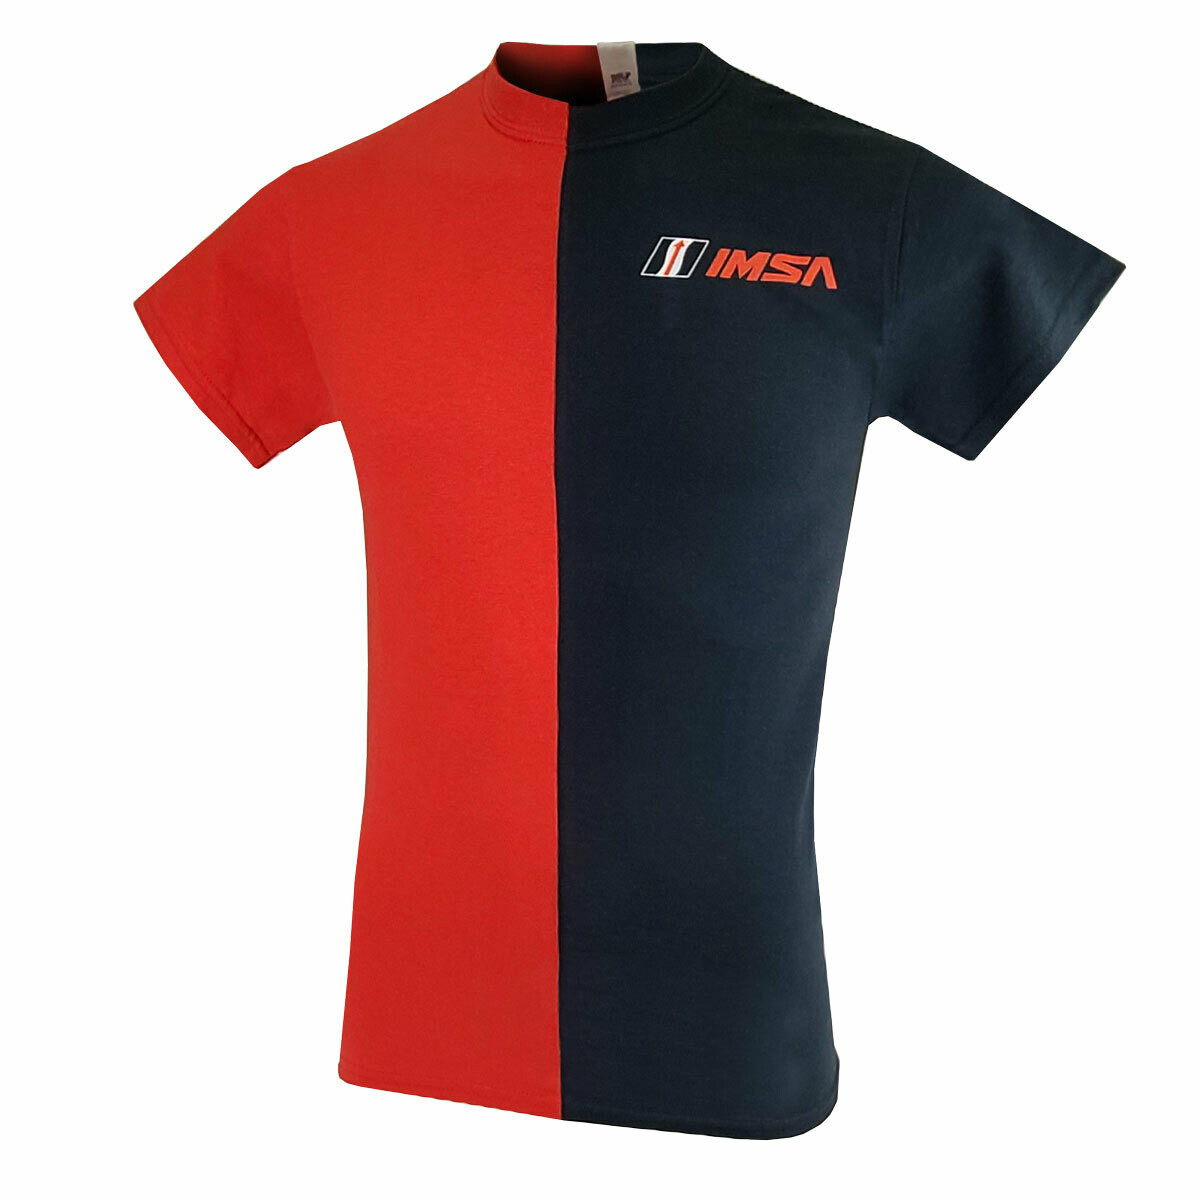 IMSA Split Tee-Red/Blk